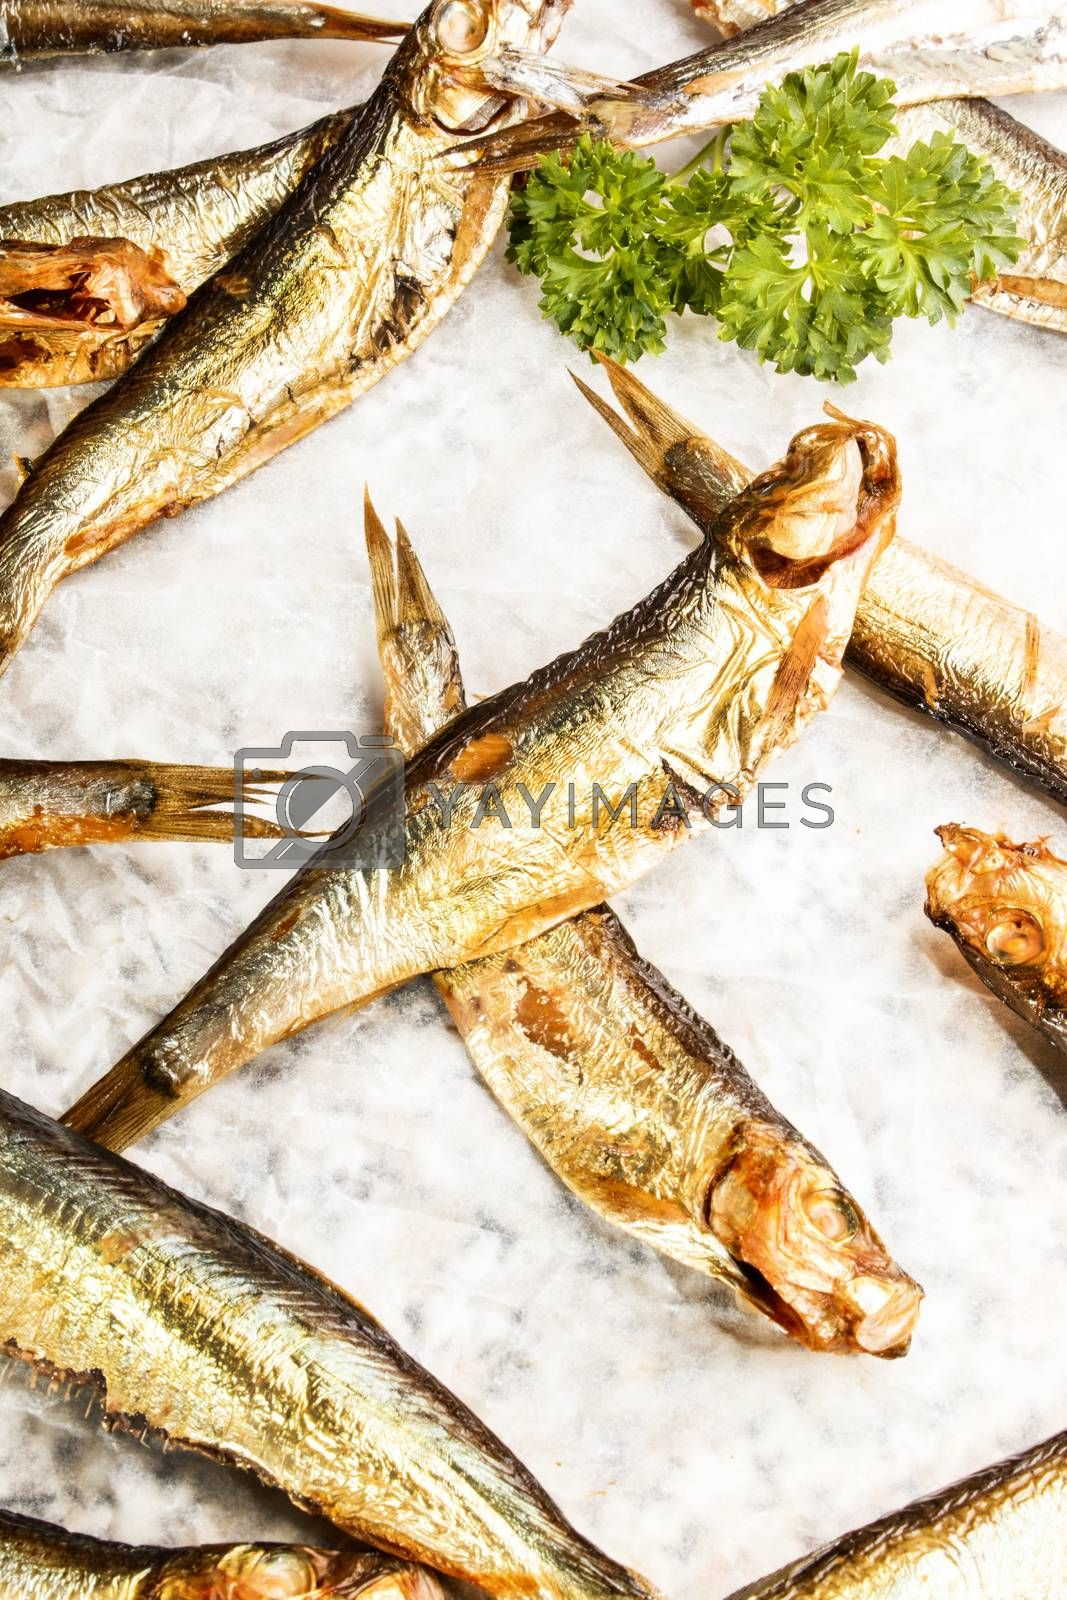 some smoked sprats and parsley on white paper